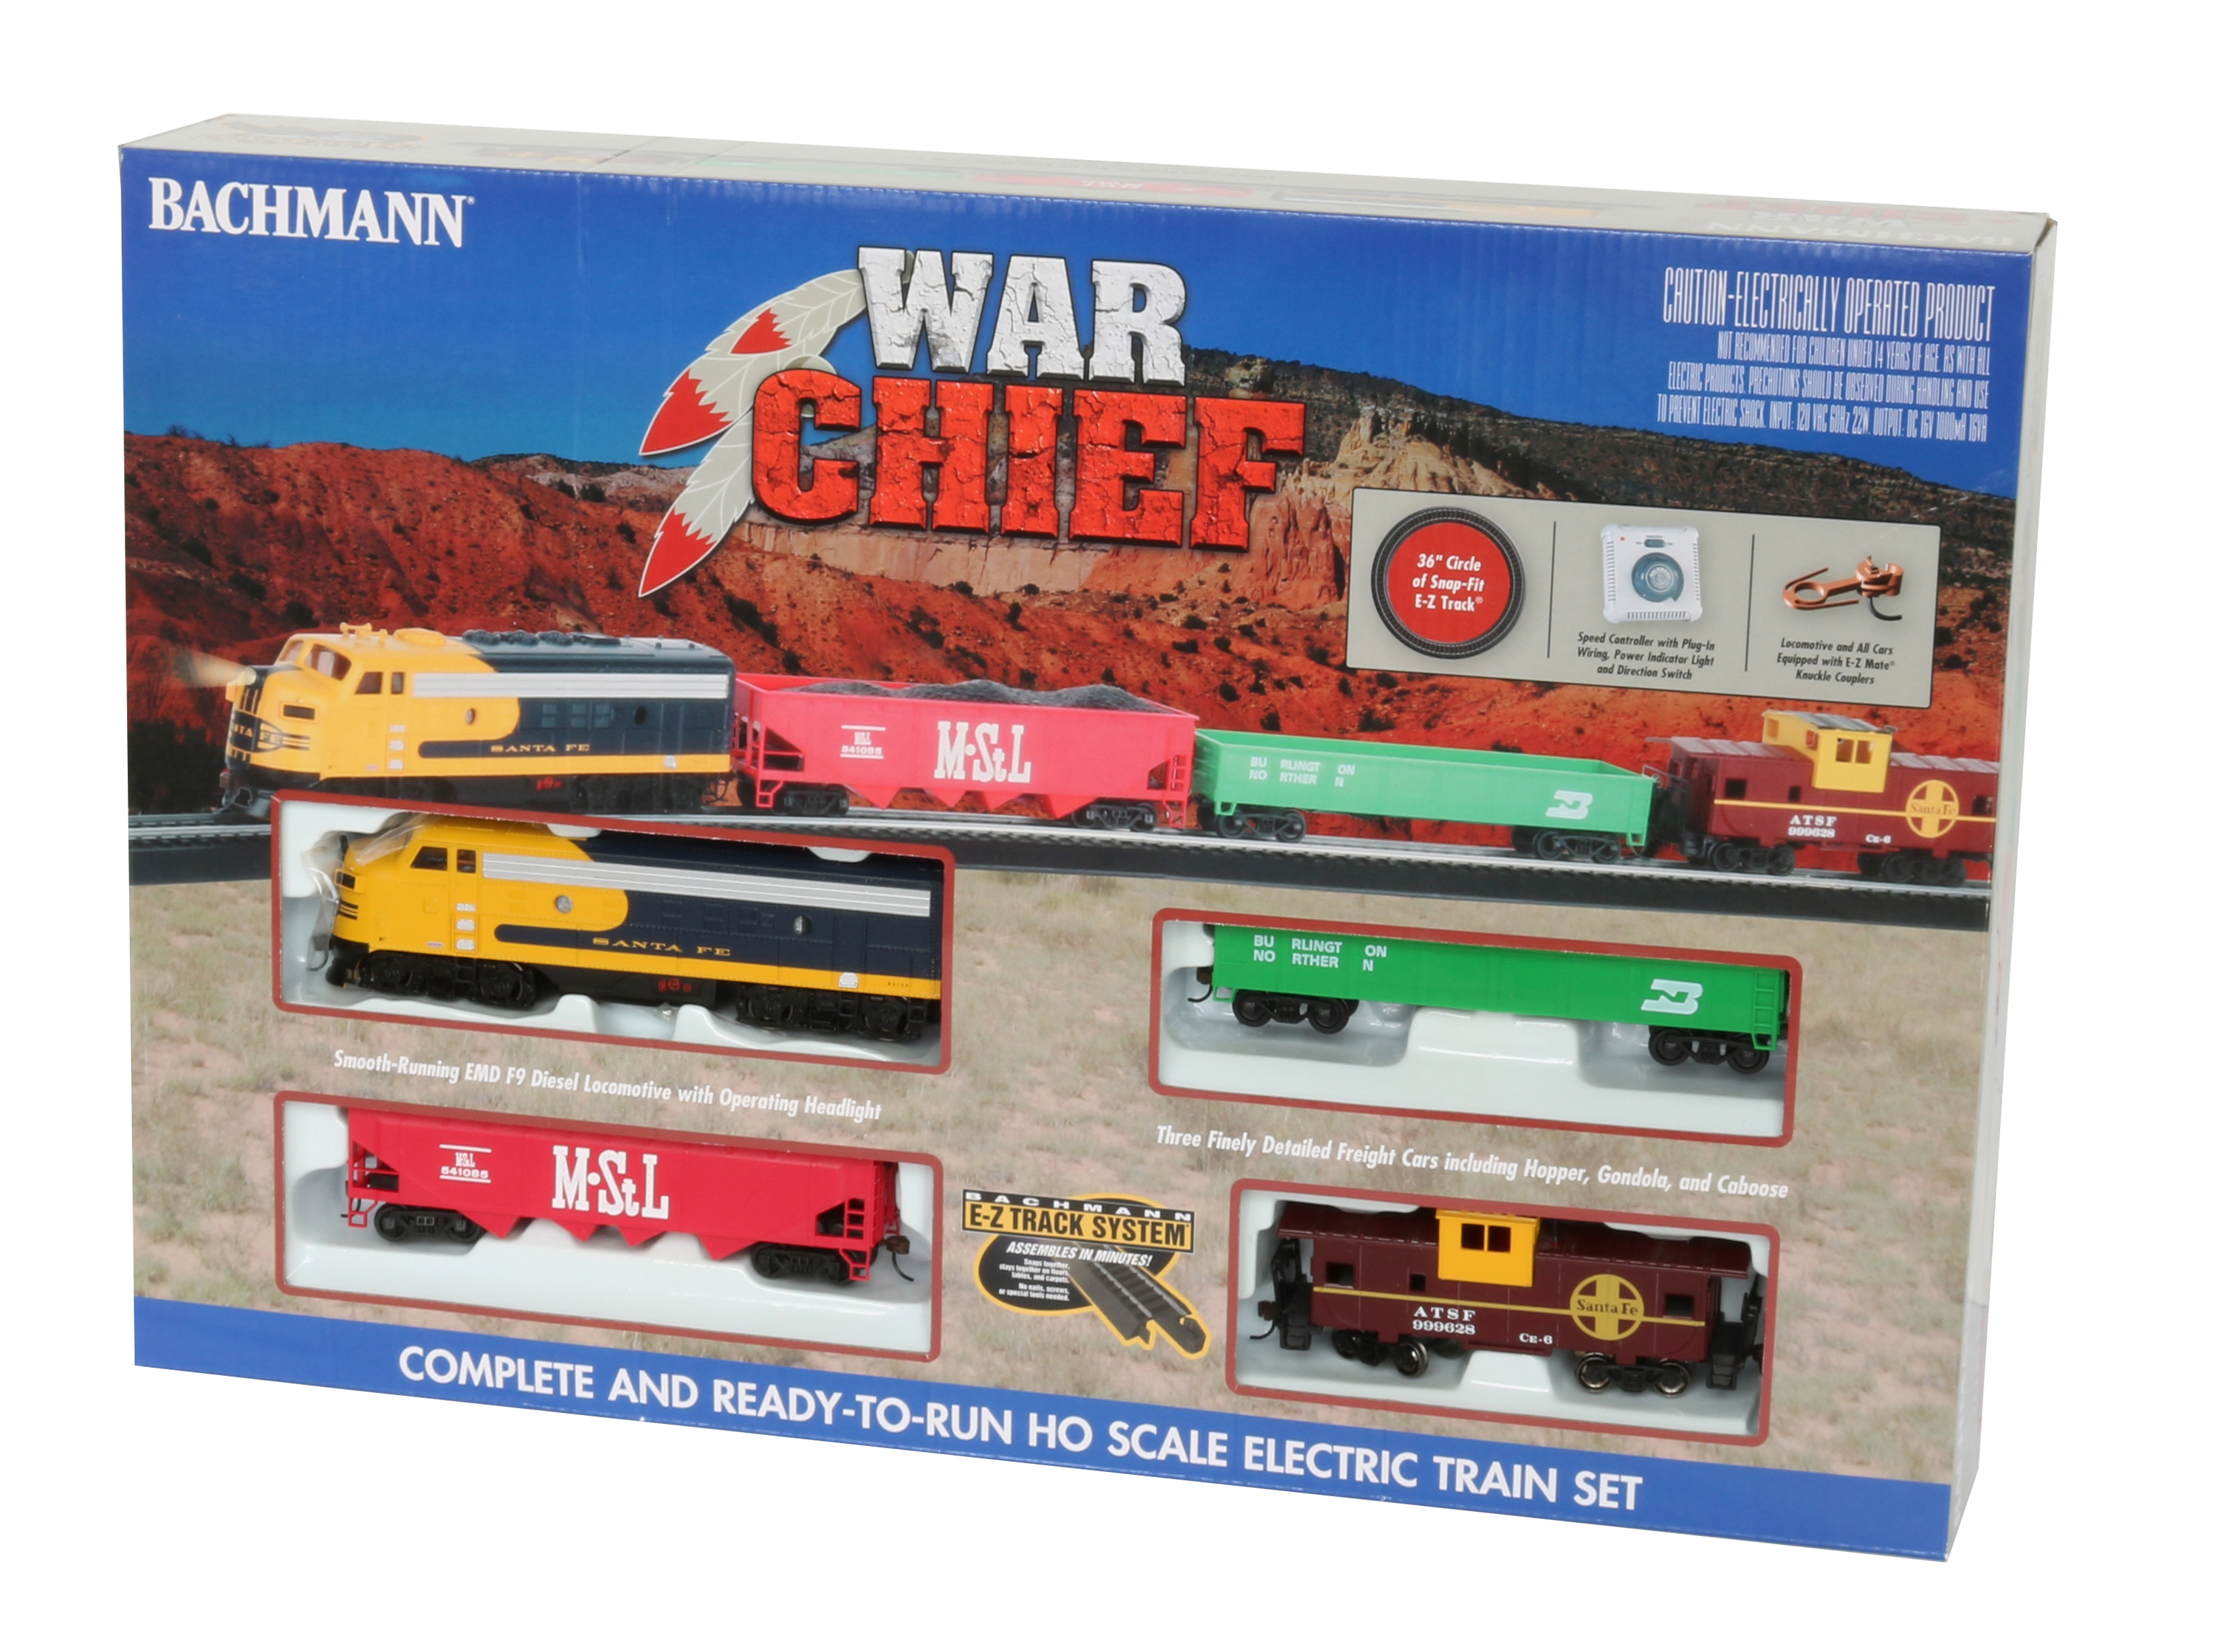 Bachmann Trains Santa Fe War Chief Ready To Run HO Scale Electric Train Set by Bachmann Trains